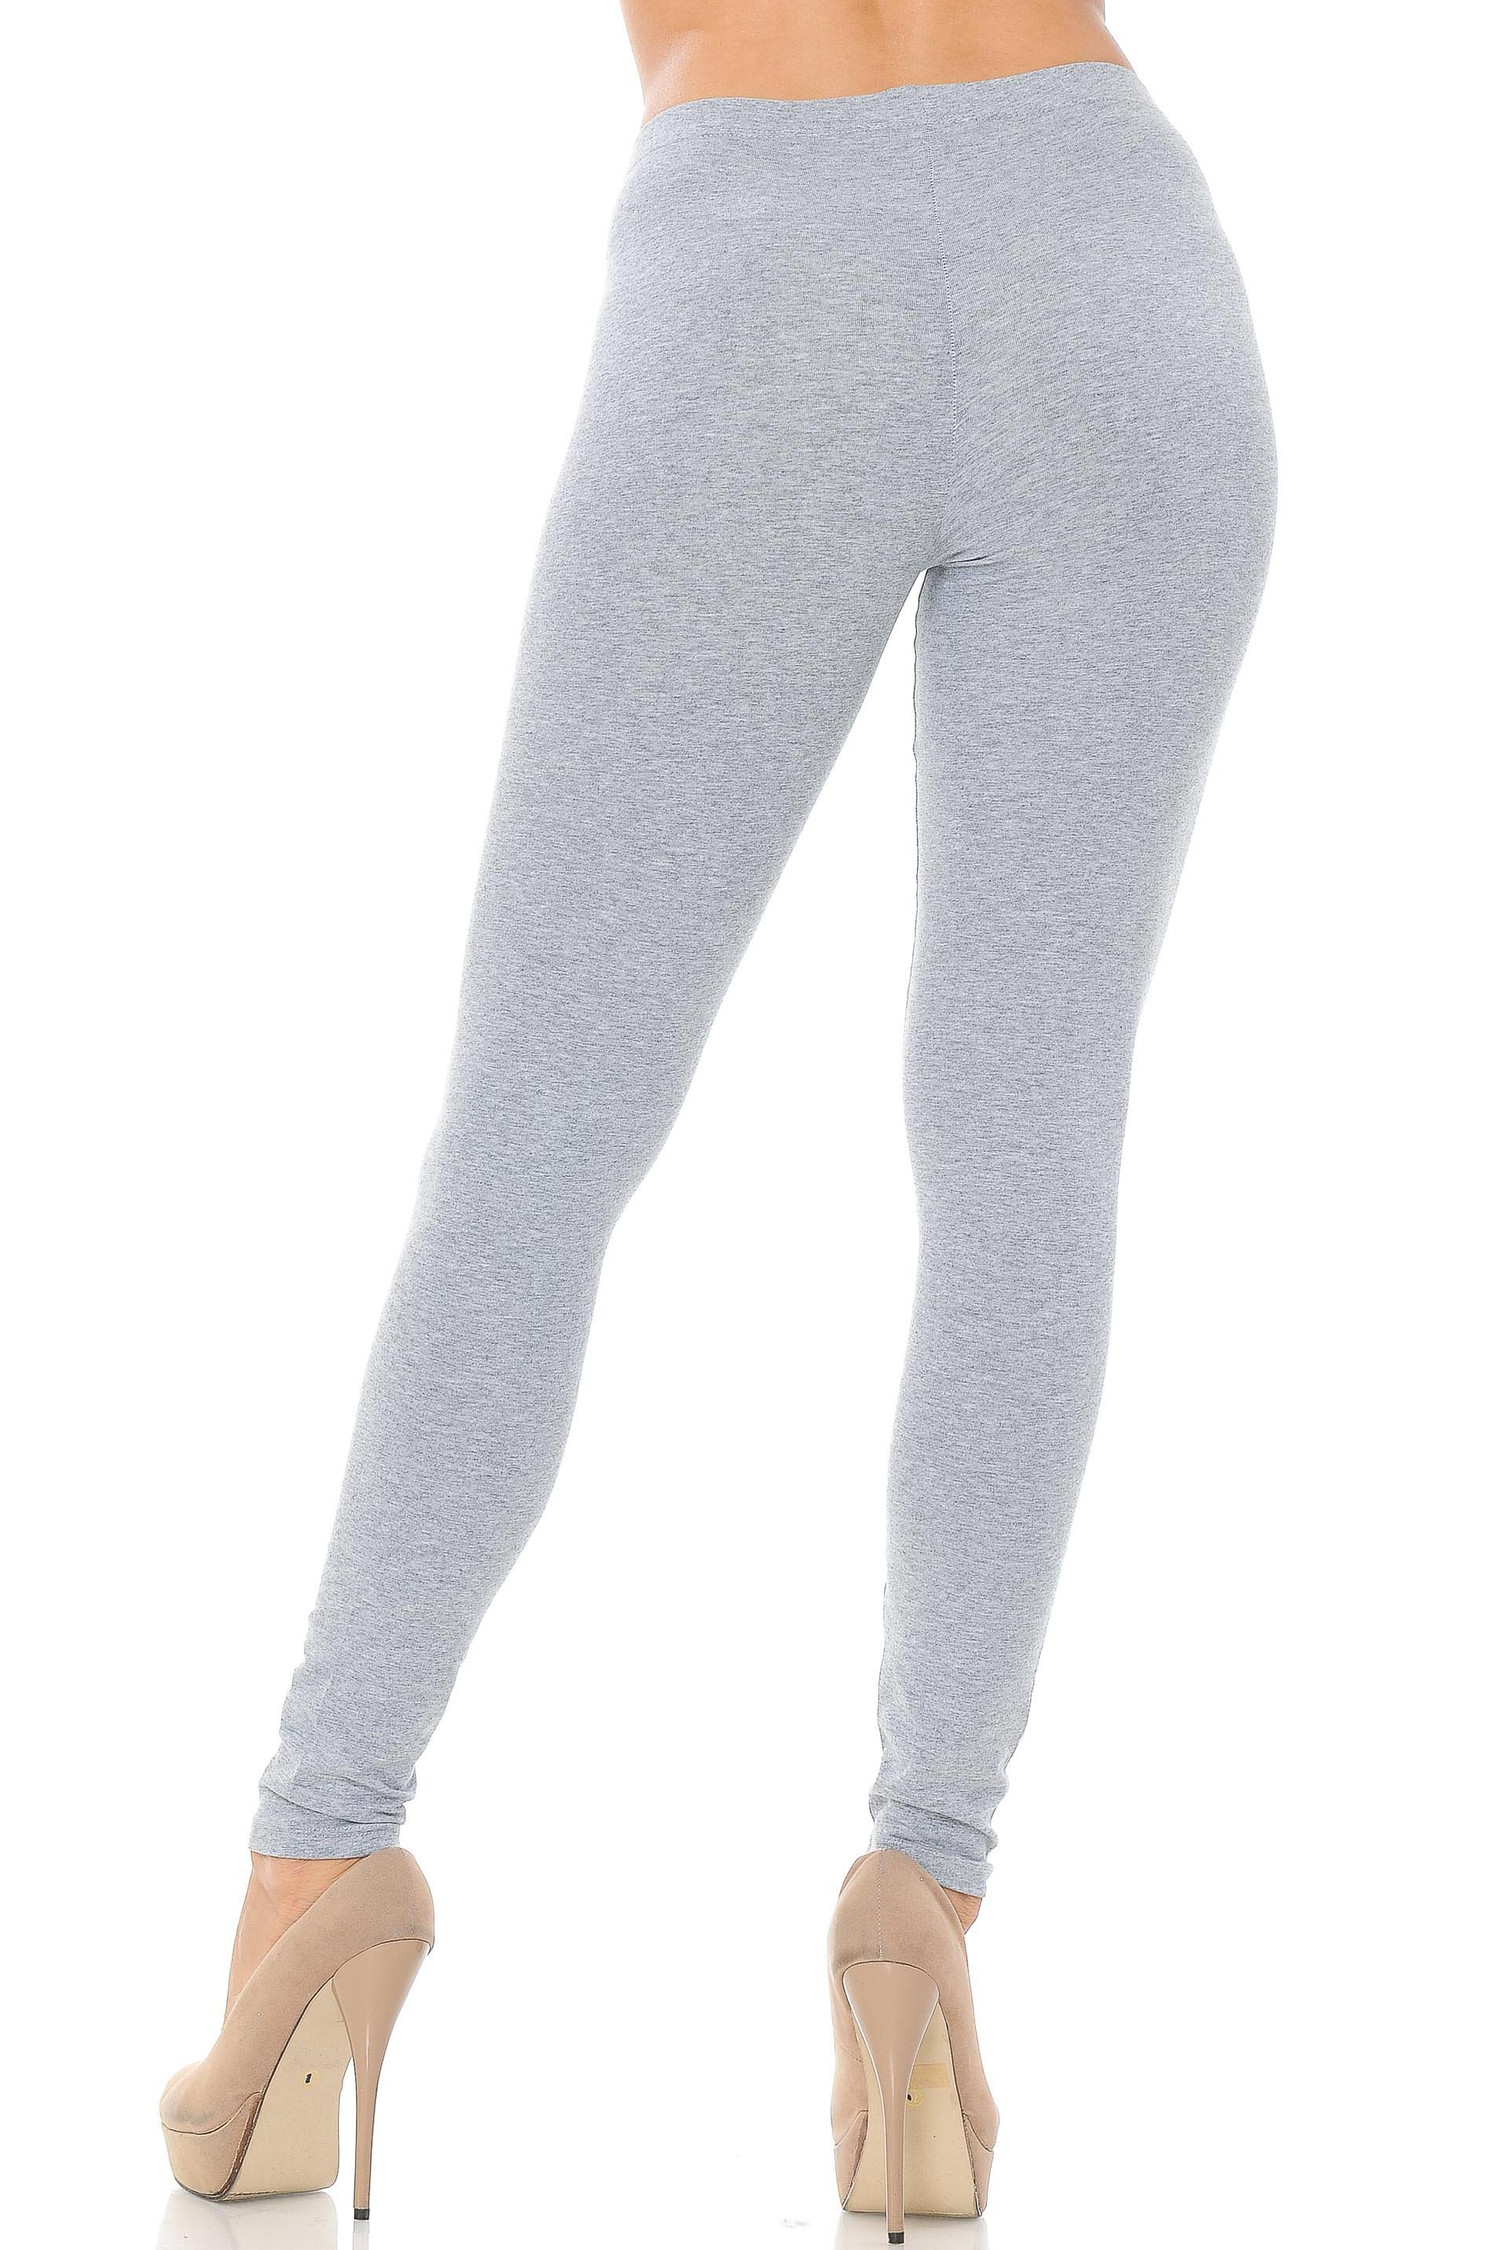 Rear view image of heather gray made in the USA cotton leggings showcasing a body hugging fit.